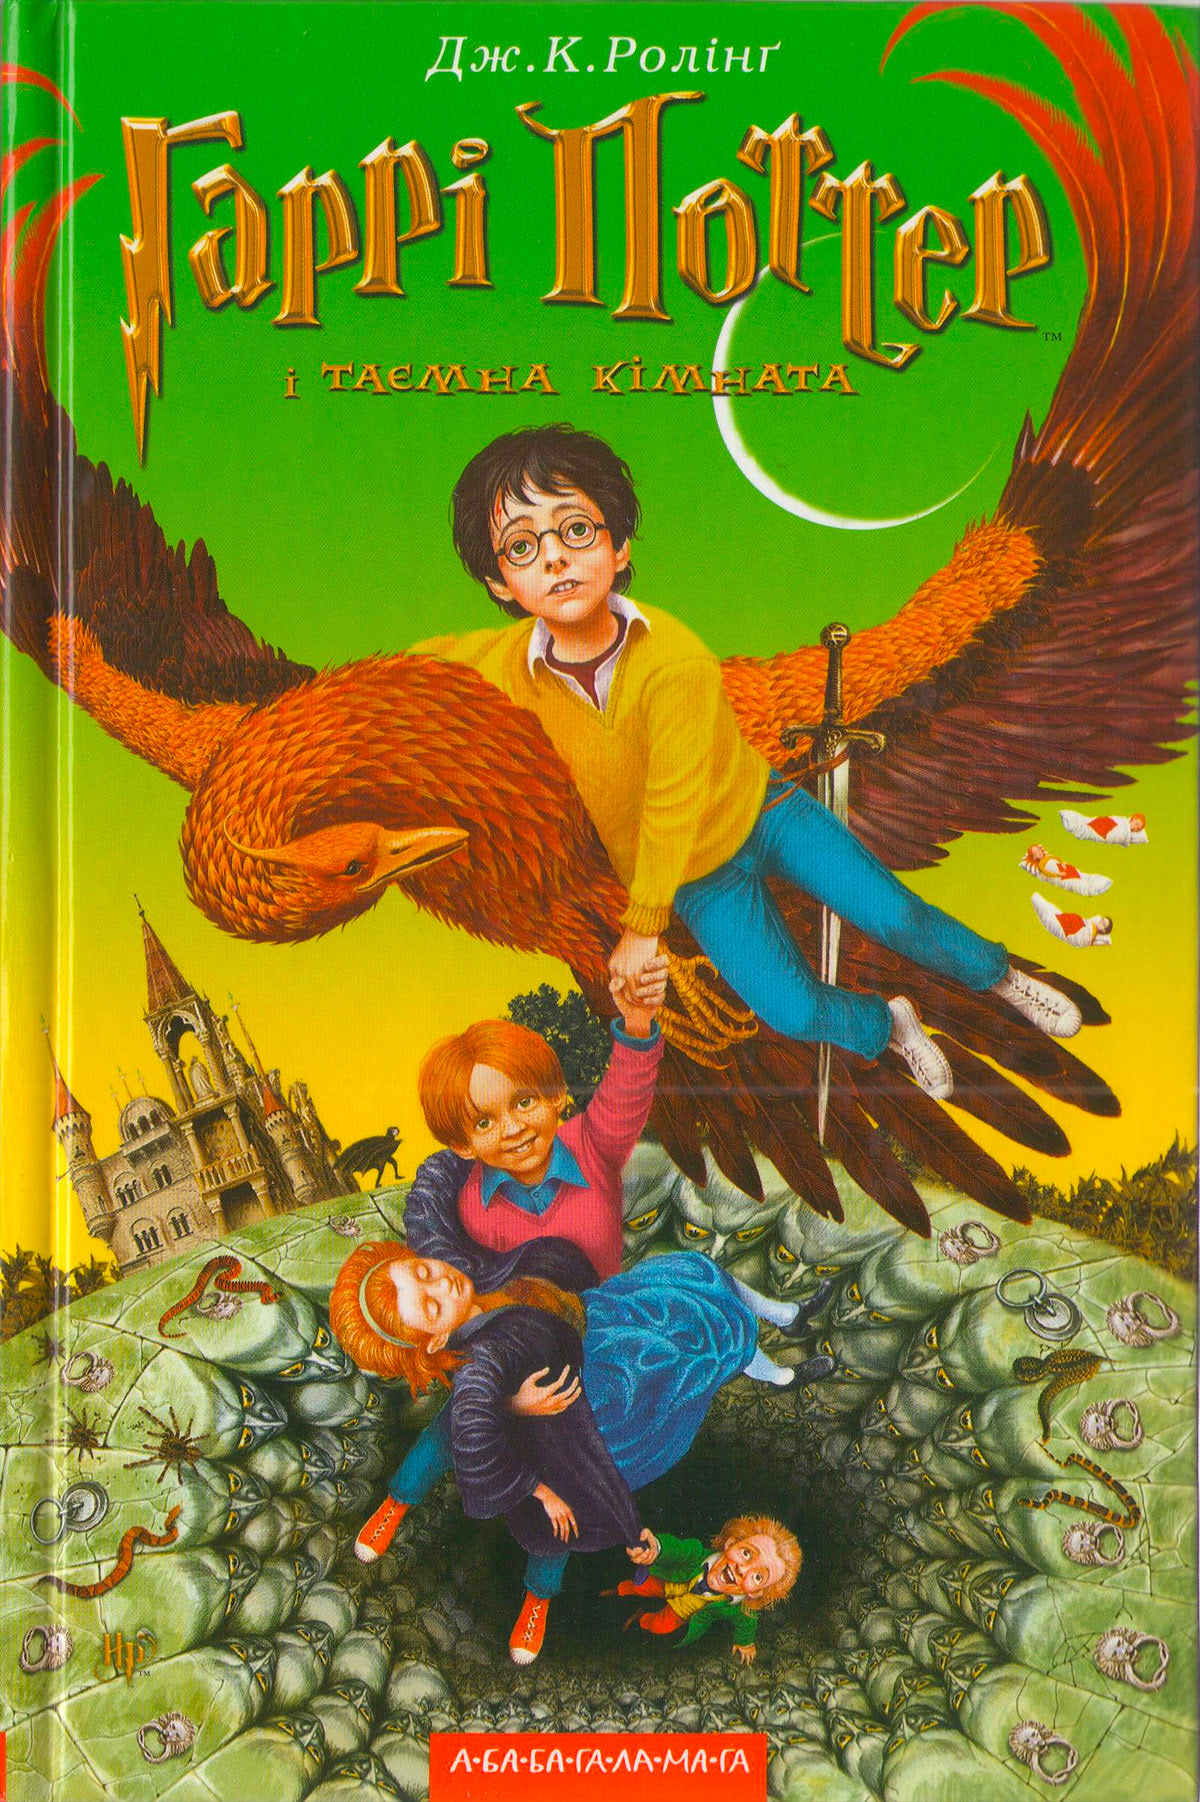 'Chamber of Secrets' Ukrainian edition